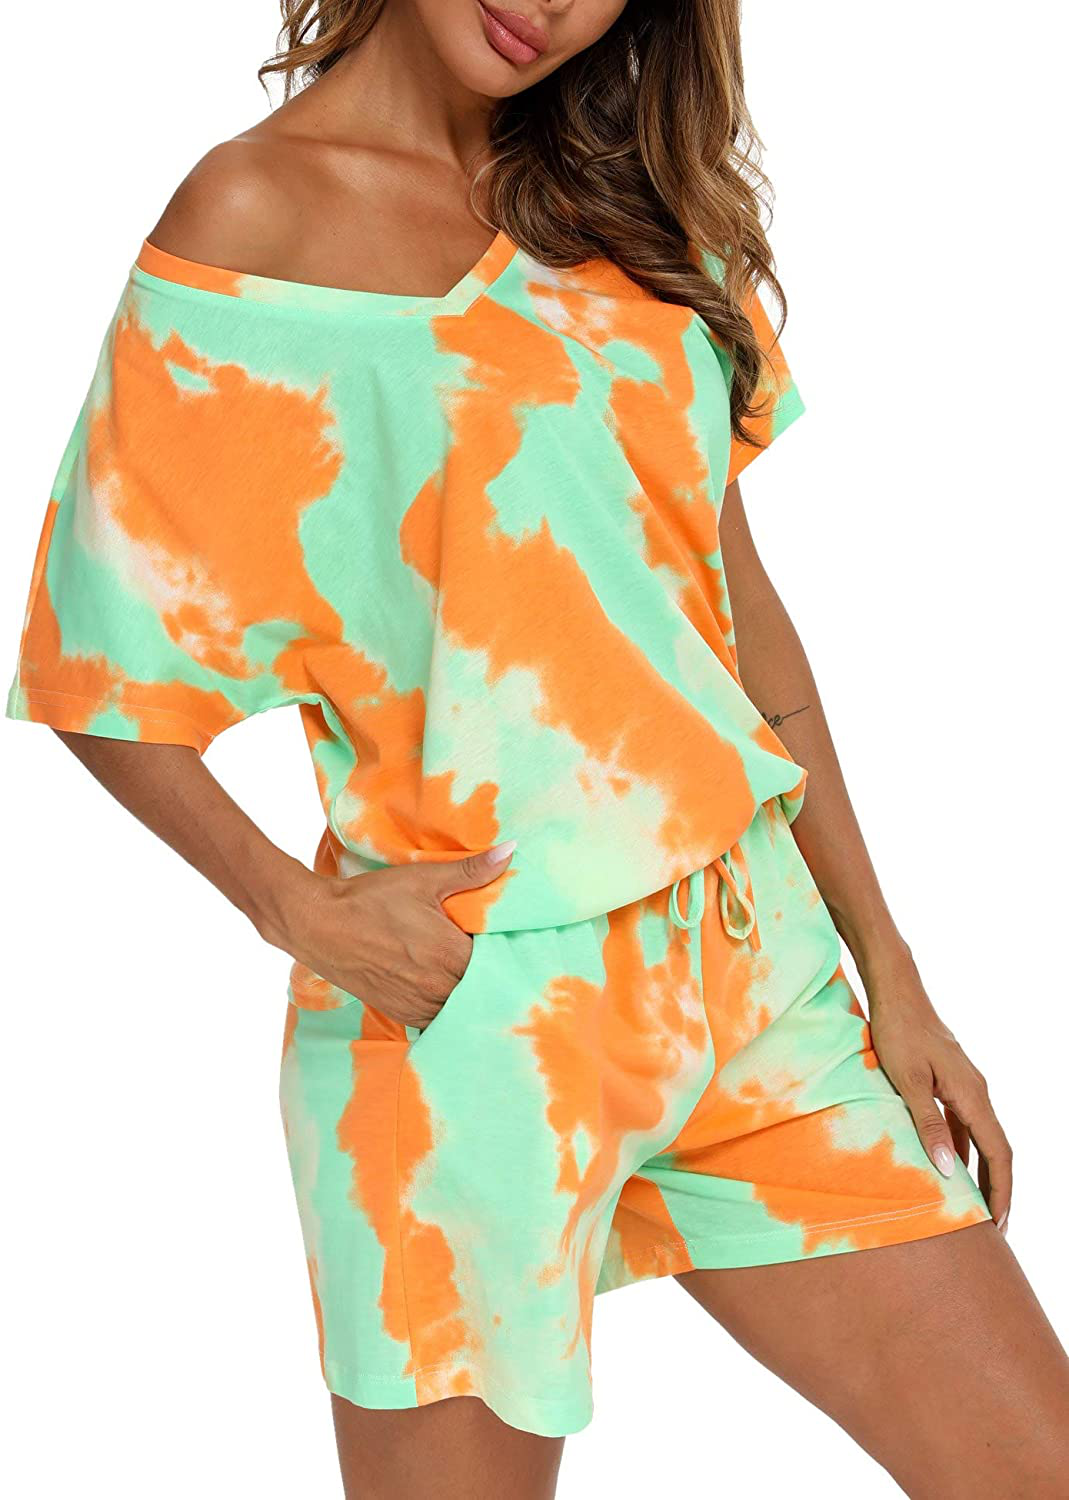 ENJOYNIGHT Women's Tie Dye Printed Pajama Sets Sleepwear Top with Shorts Lounge Sets with Pocket